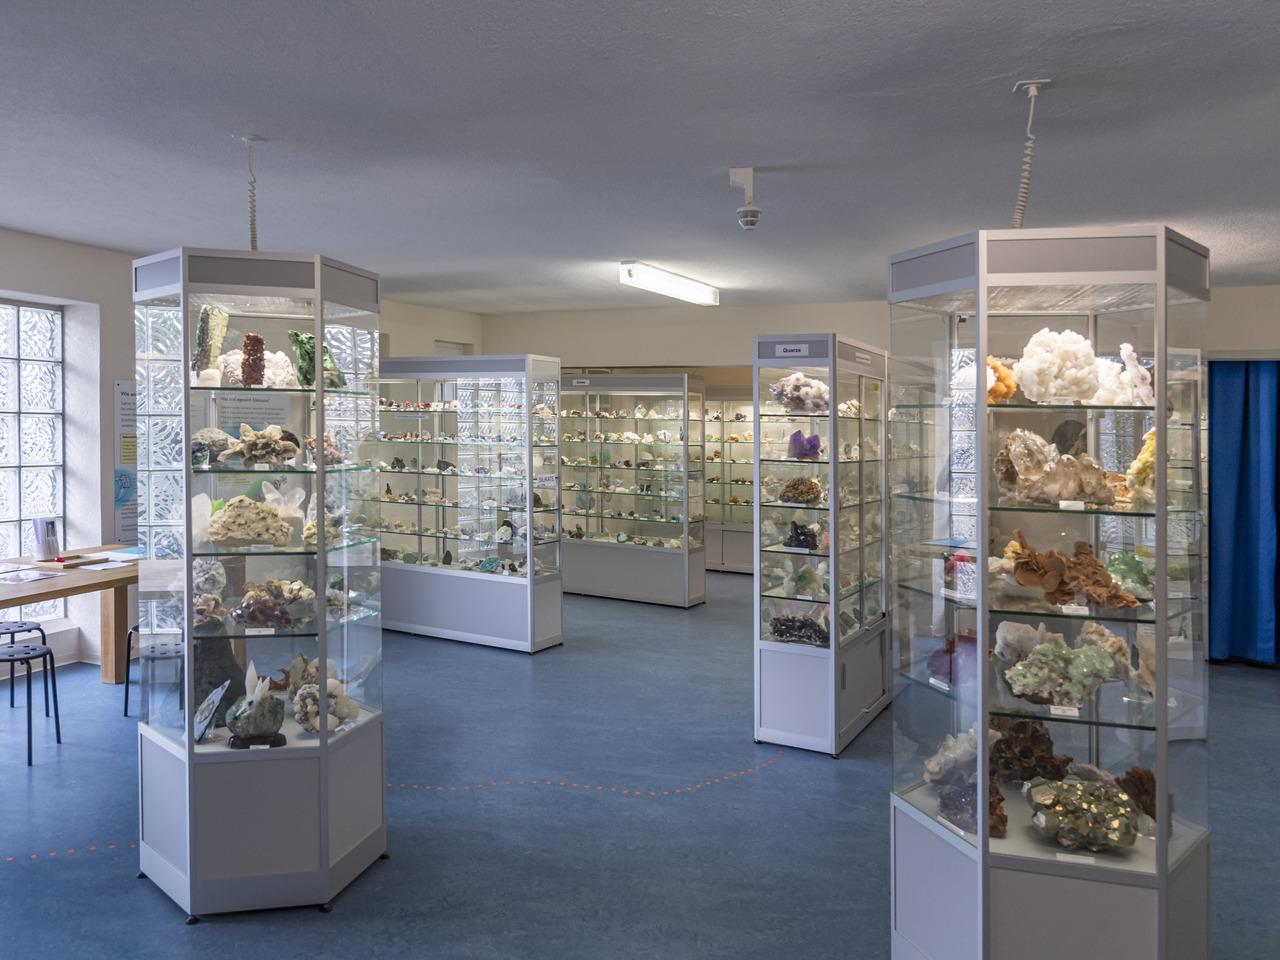 The collection consists of around 1,200 minerals and fossils